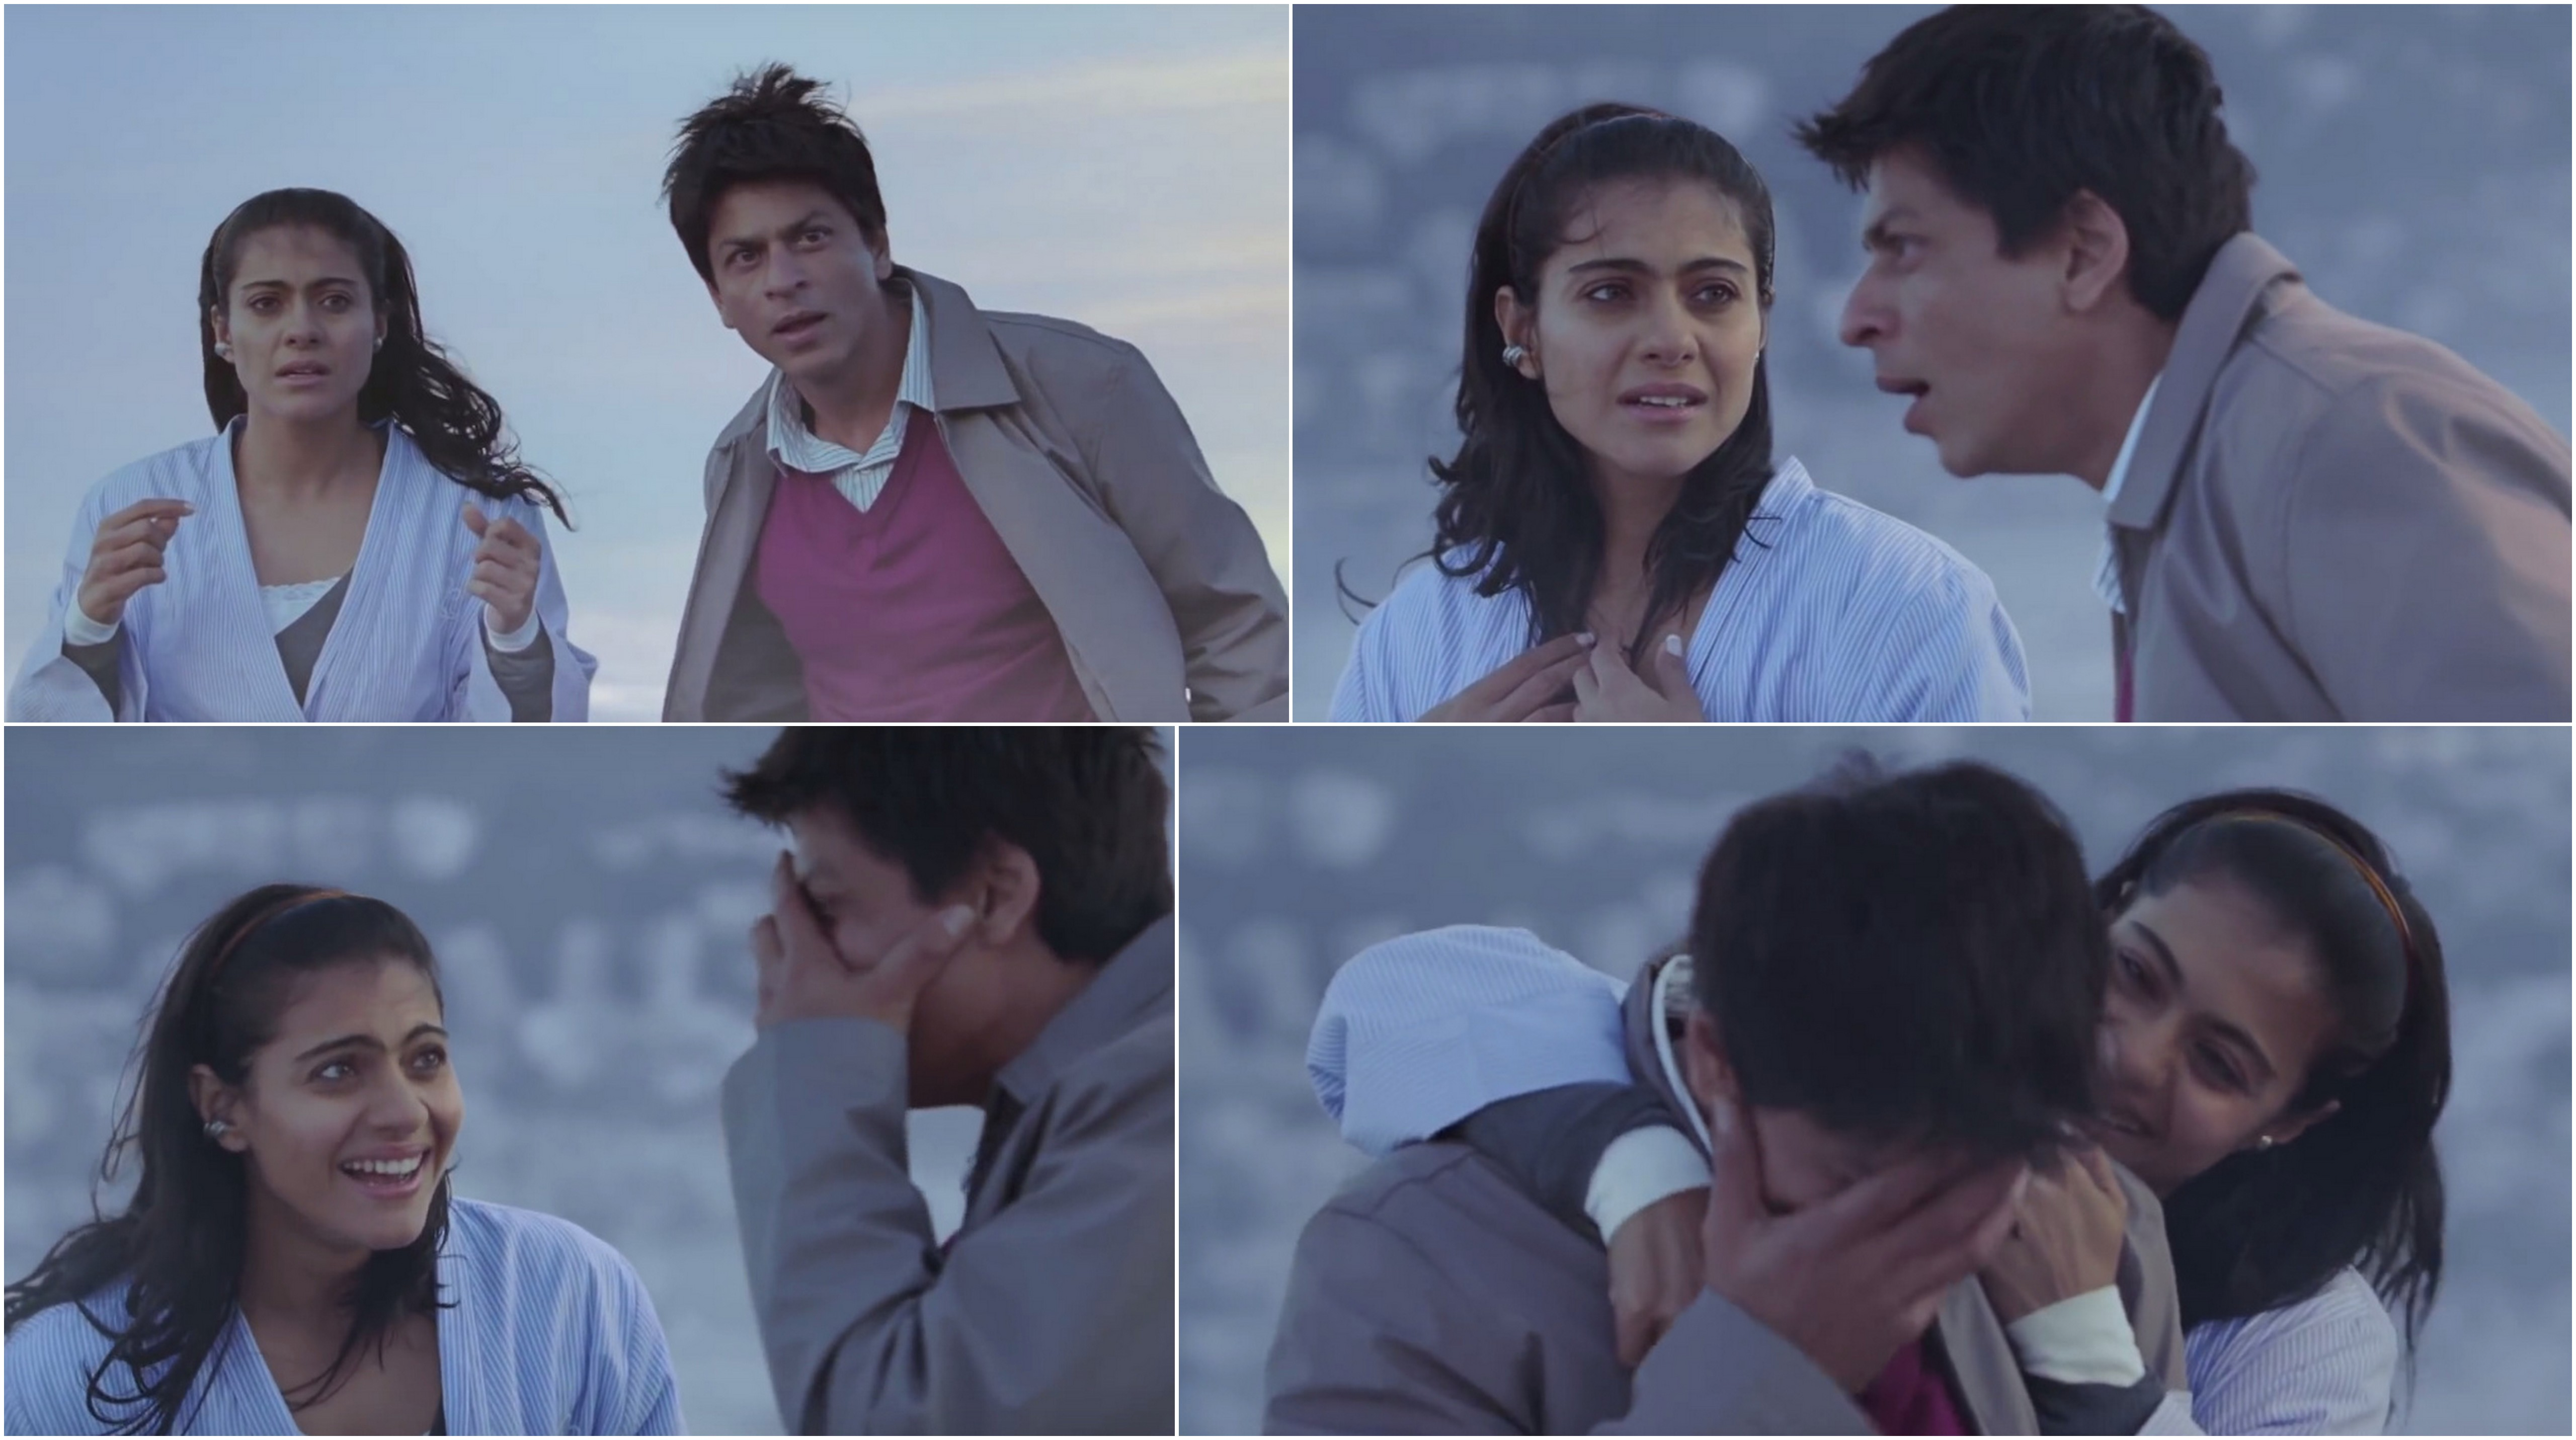 Outstanding Srk Kajols Best On Screen Moments That Made Us Fall In Love With Them Short Hairstyles For Black Women Fulllsitofus